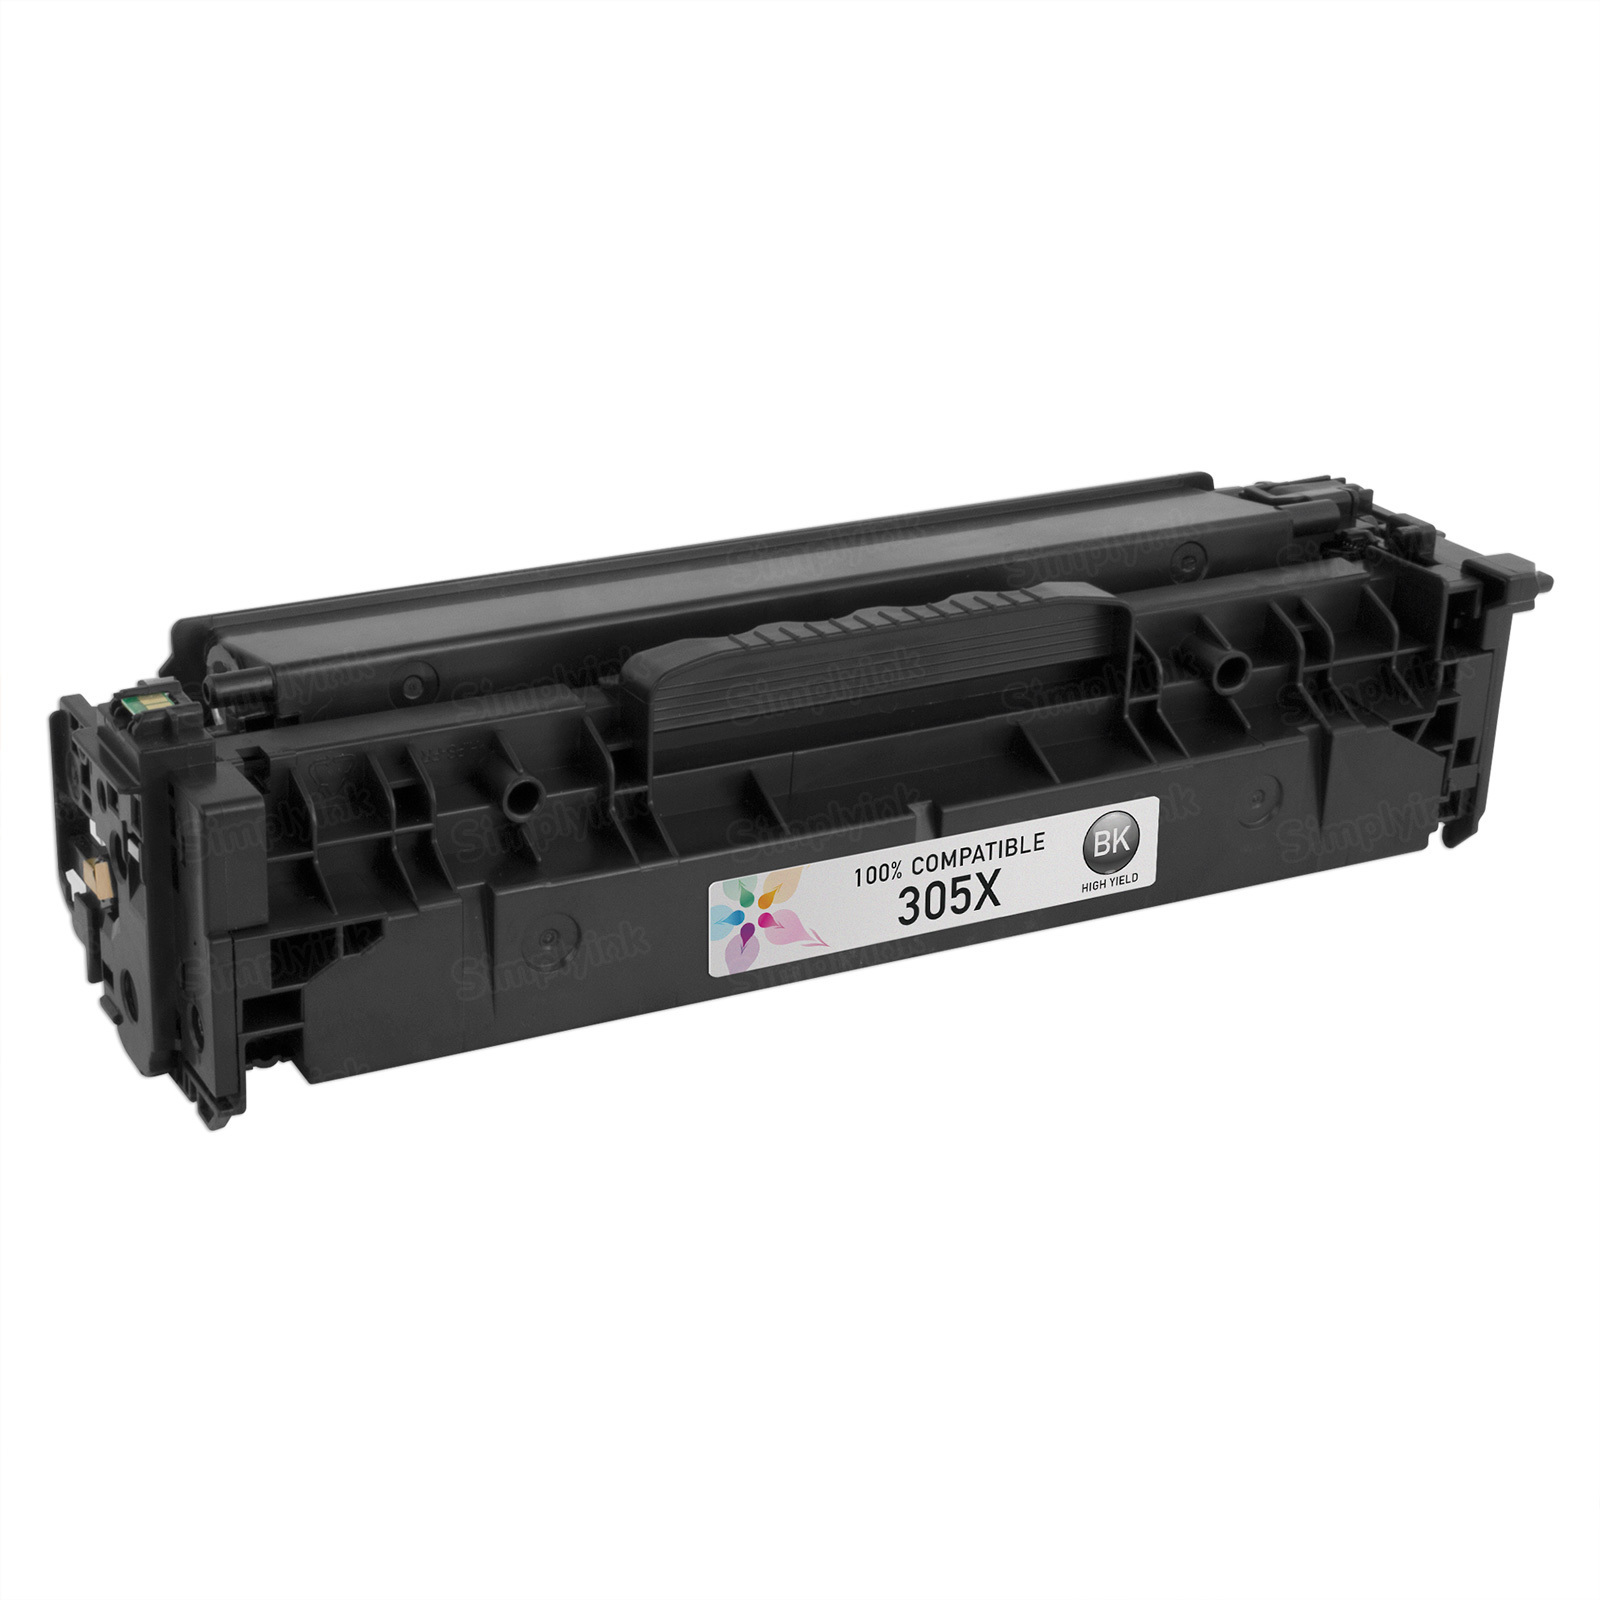 Replacement High-Yield Black Toner for HP 305X